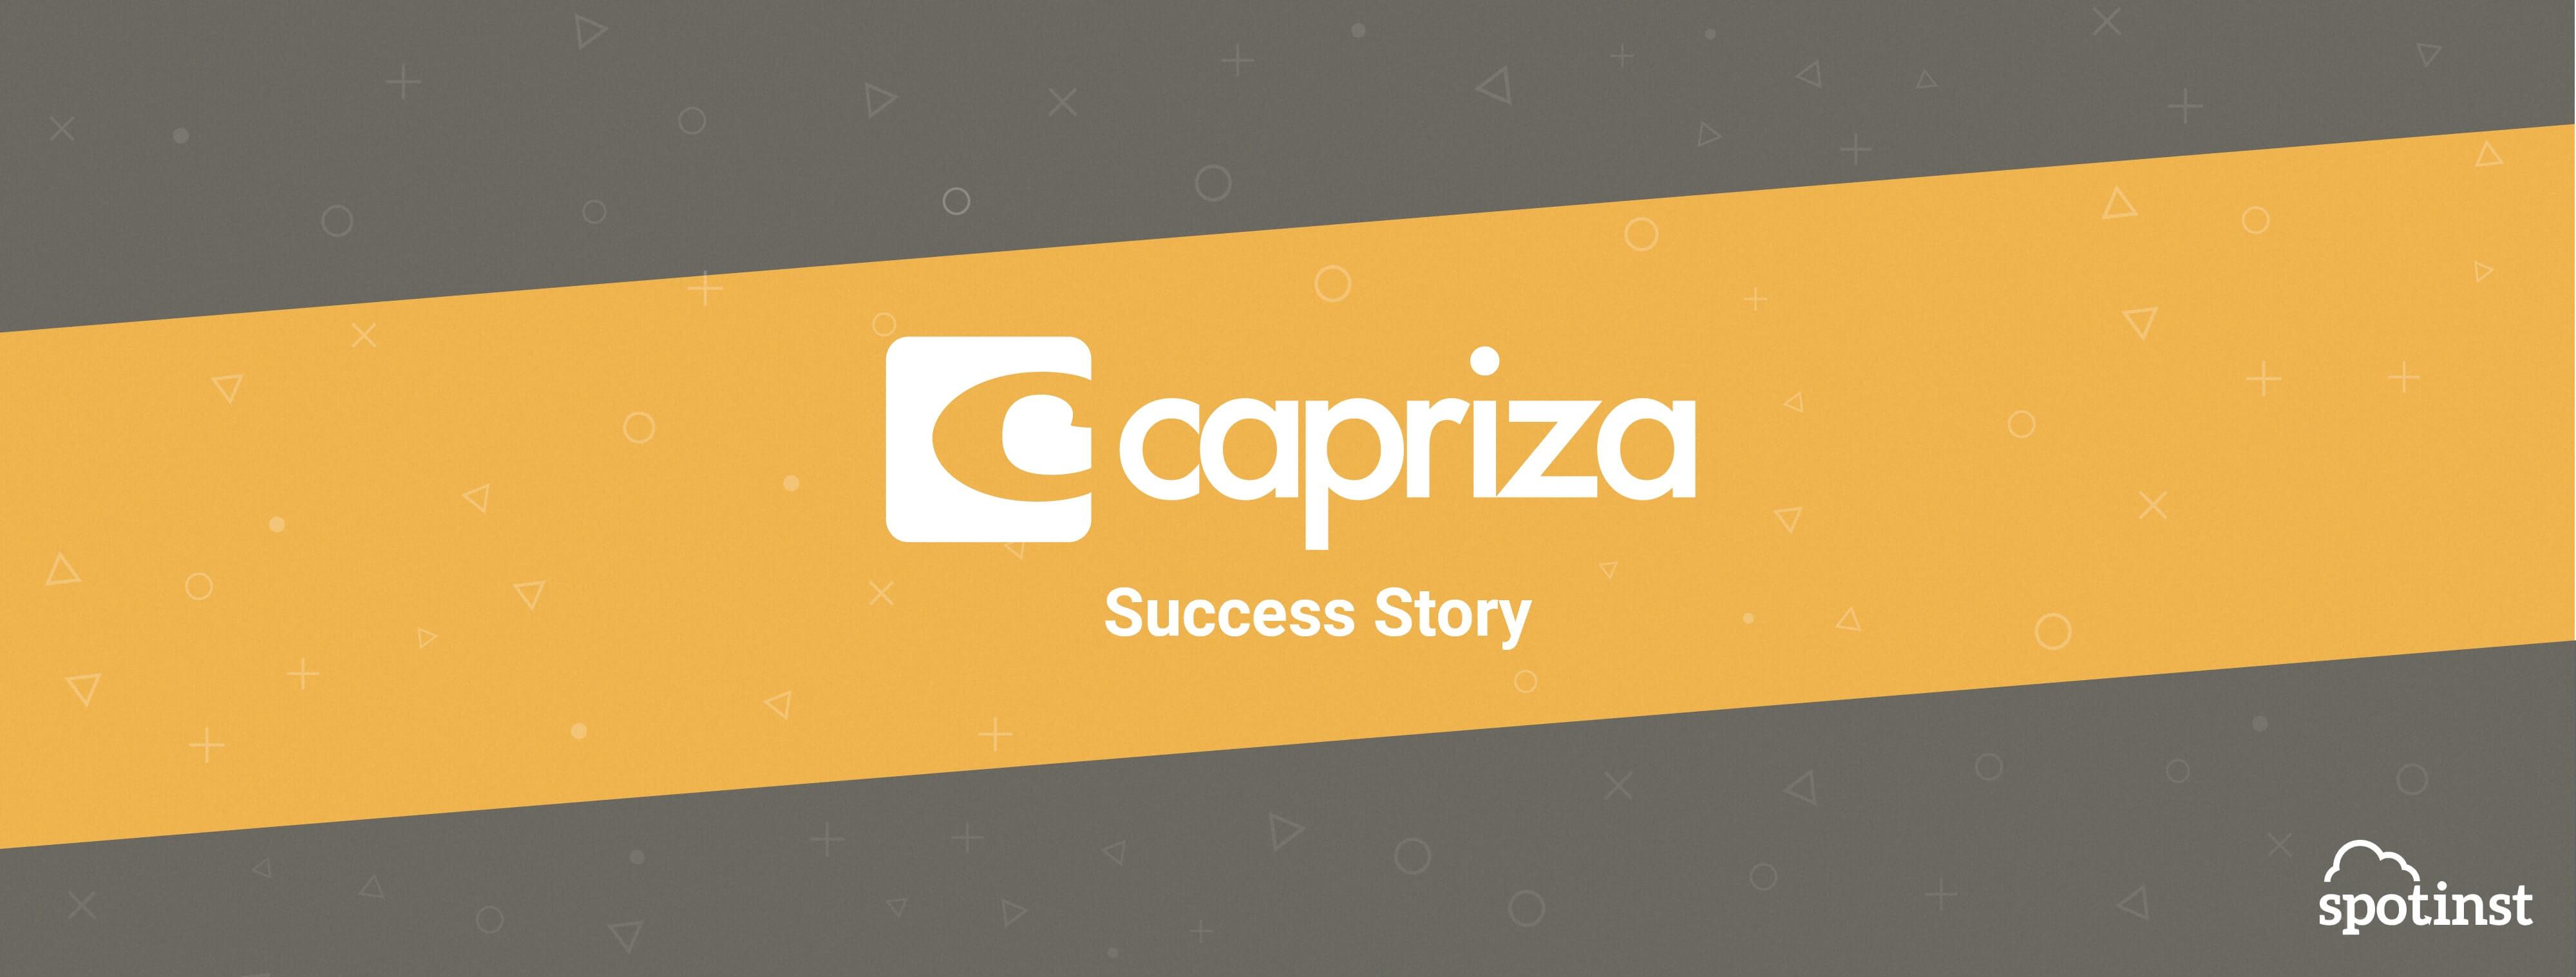 How Capriza both increased their Jenkins Workload by 50% and cut costs by 50% with Spotinst